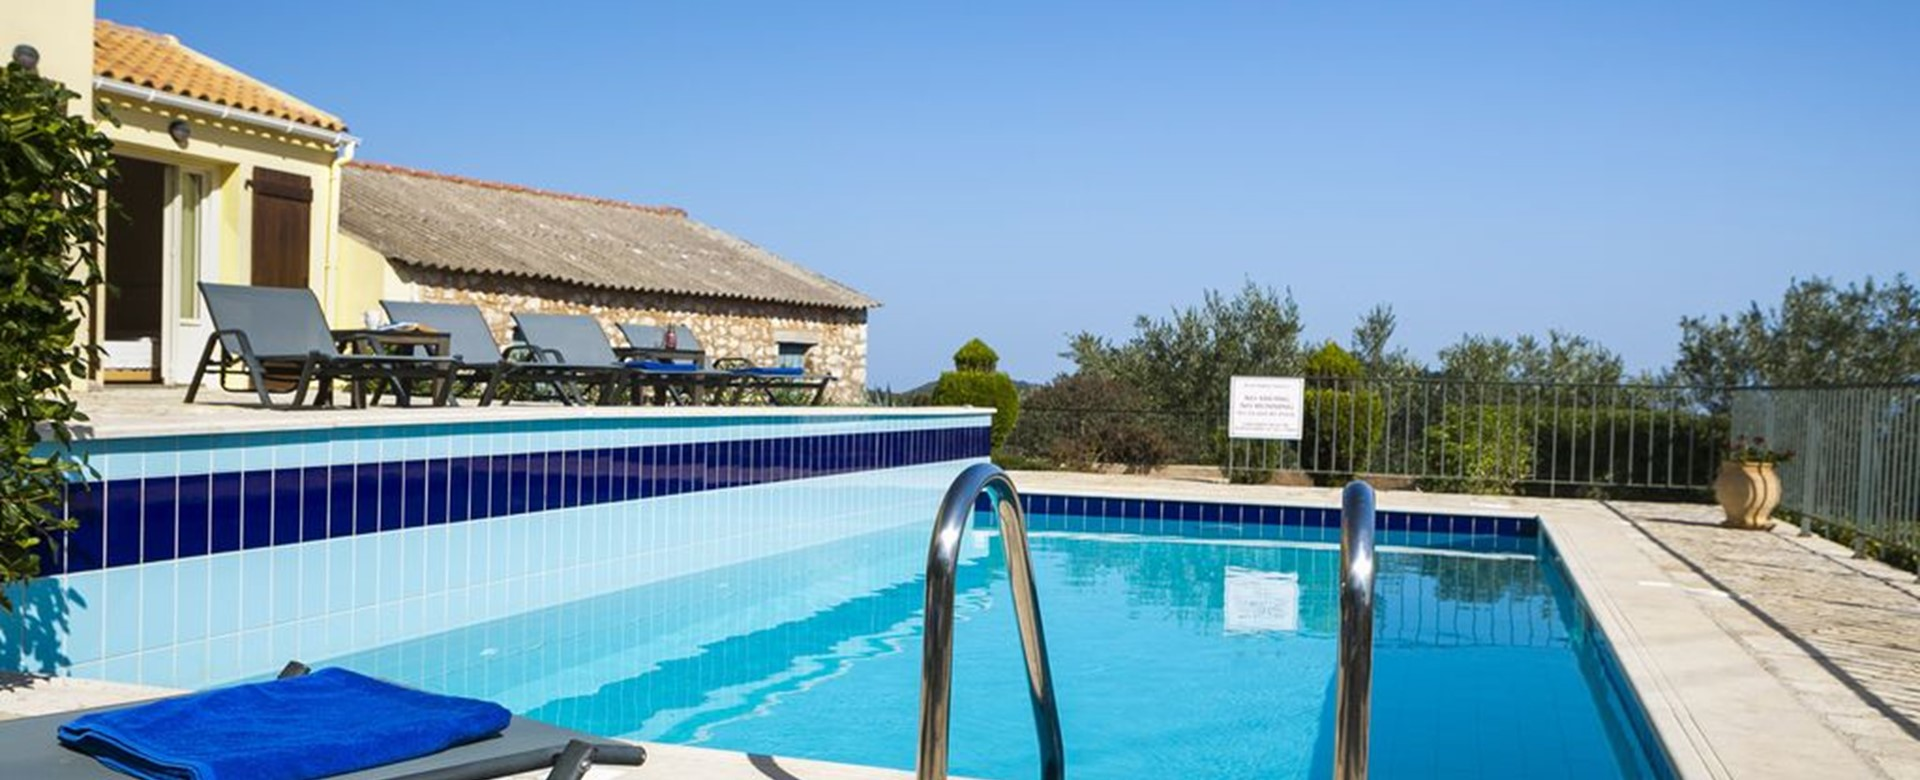 Cool off in the pool while sunbathing at Villa Cypress, Fiscardo, Kefalonia, Greek Islands